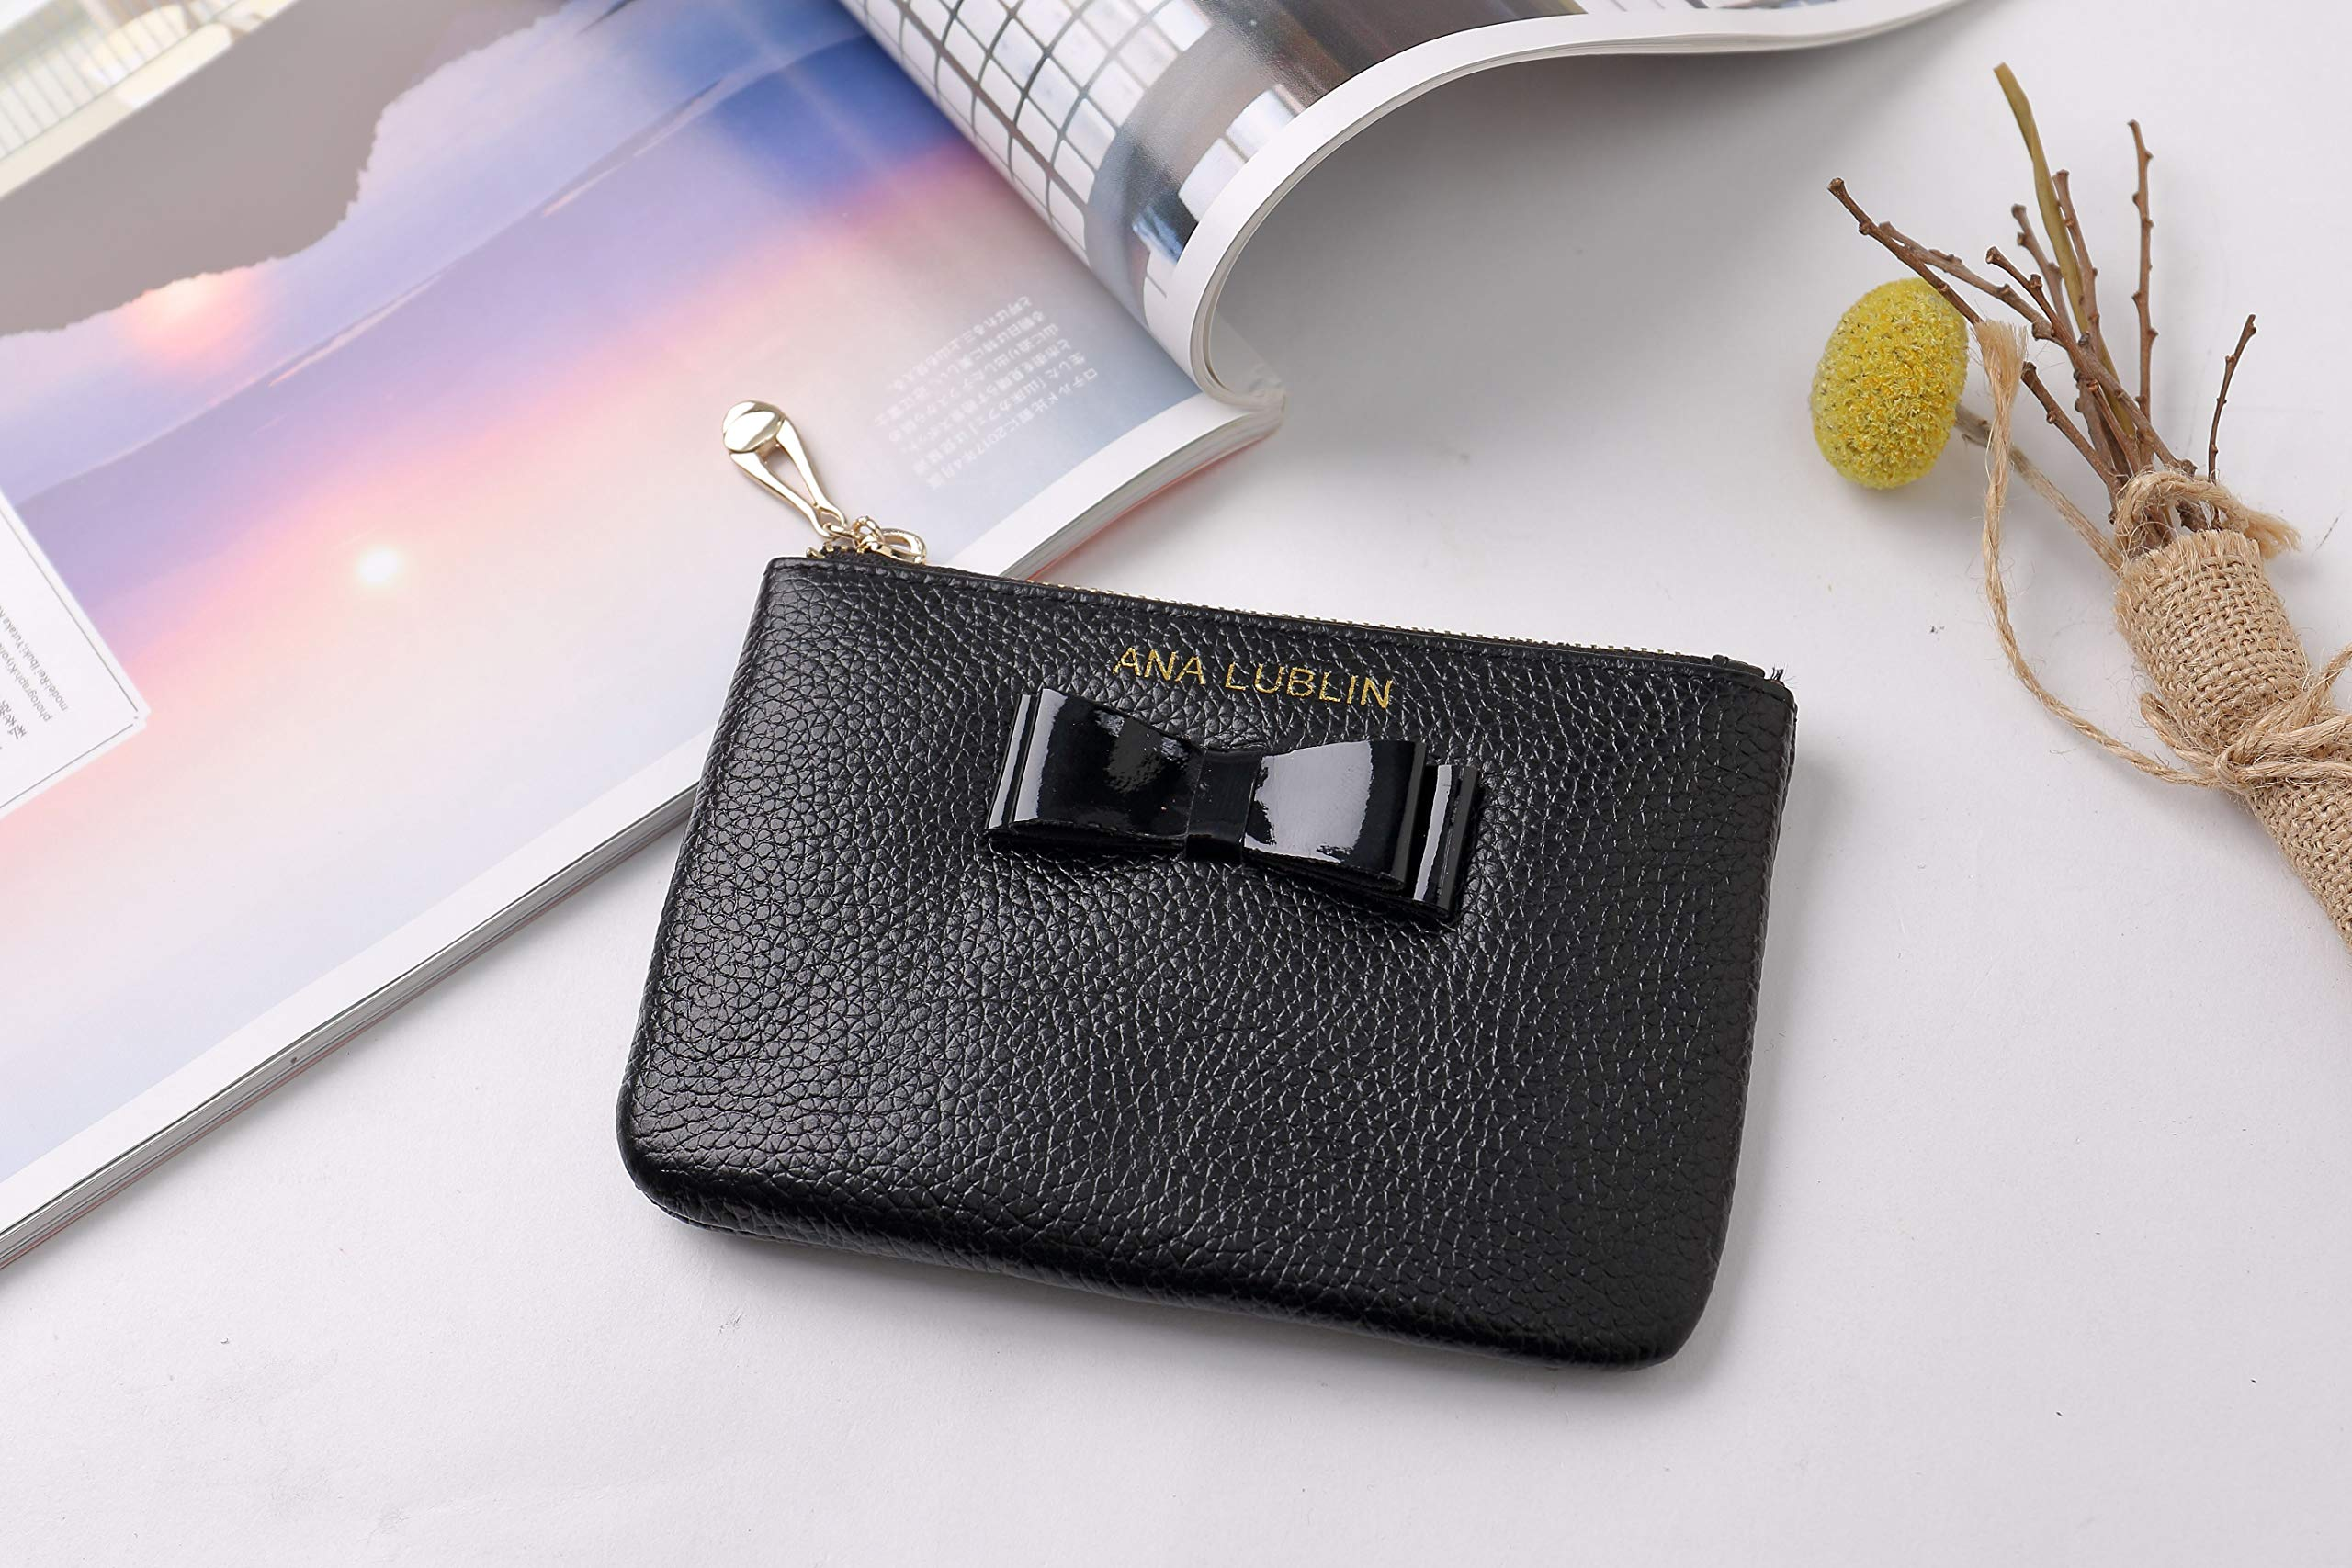 ANA LUBLIN leather Wallet Small Coin Purse Women RFID Blocking Mini Money Pocket by ANA LUBLIN (Image #7)